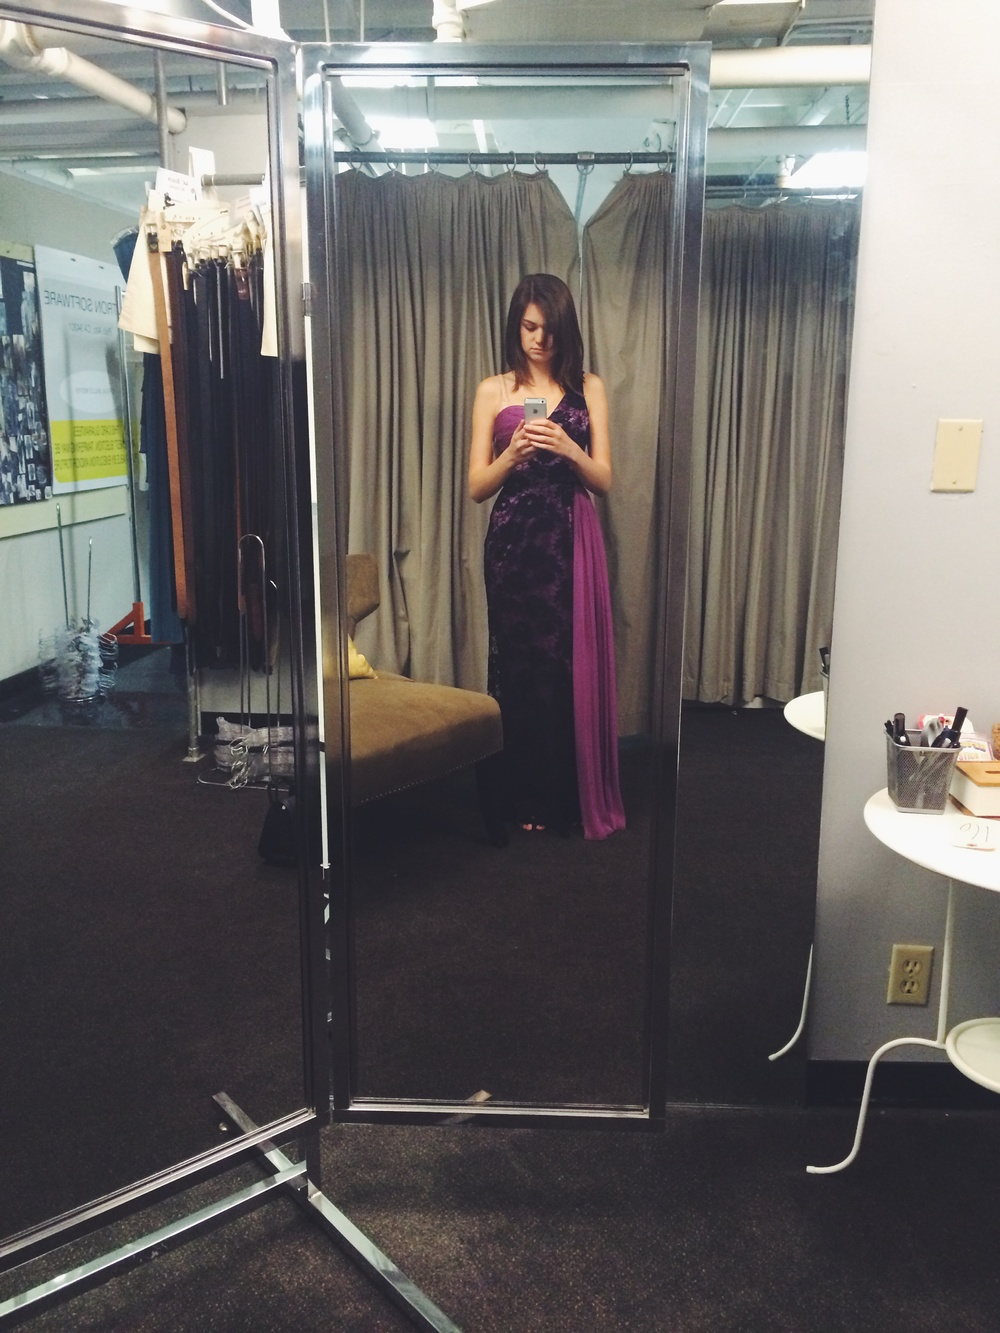 my fitting with the costumers. this purple half-toga dress was very entertaining to me and everyone else on set that day.